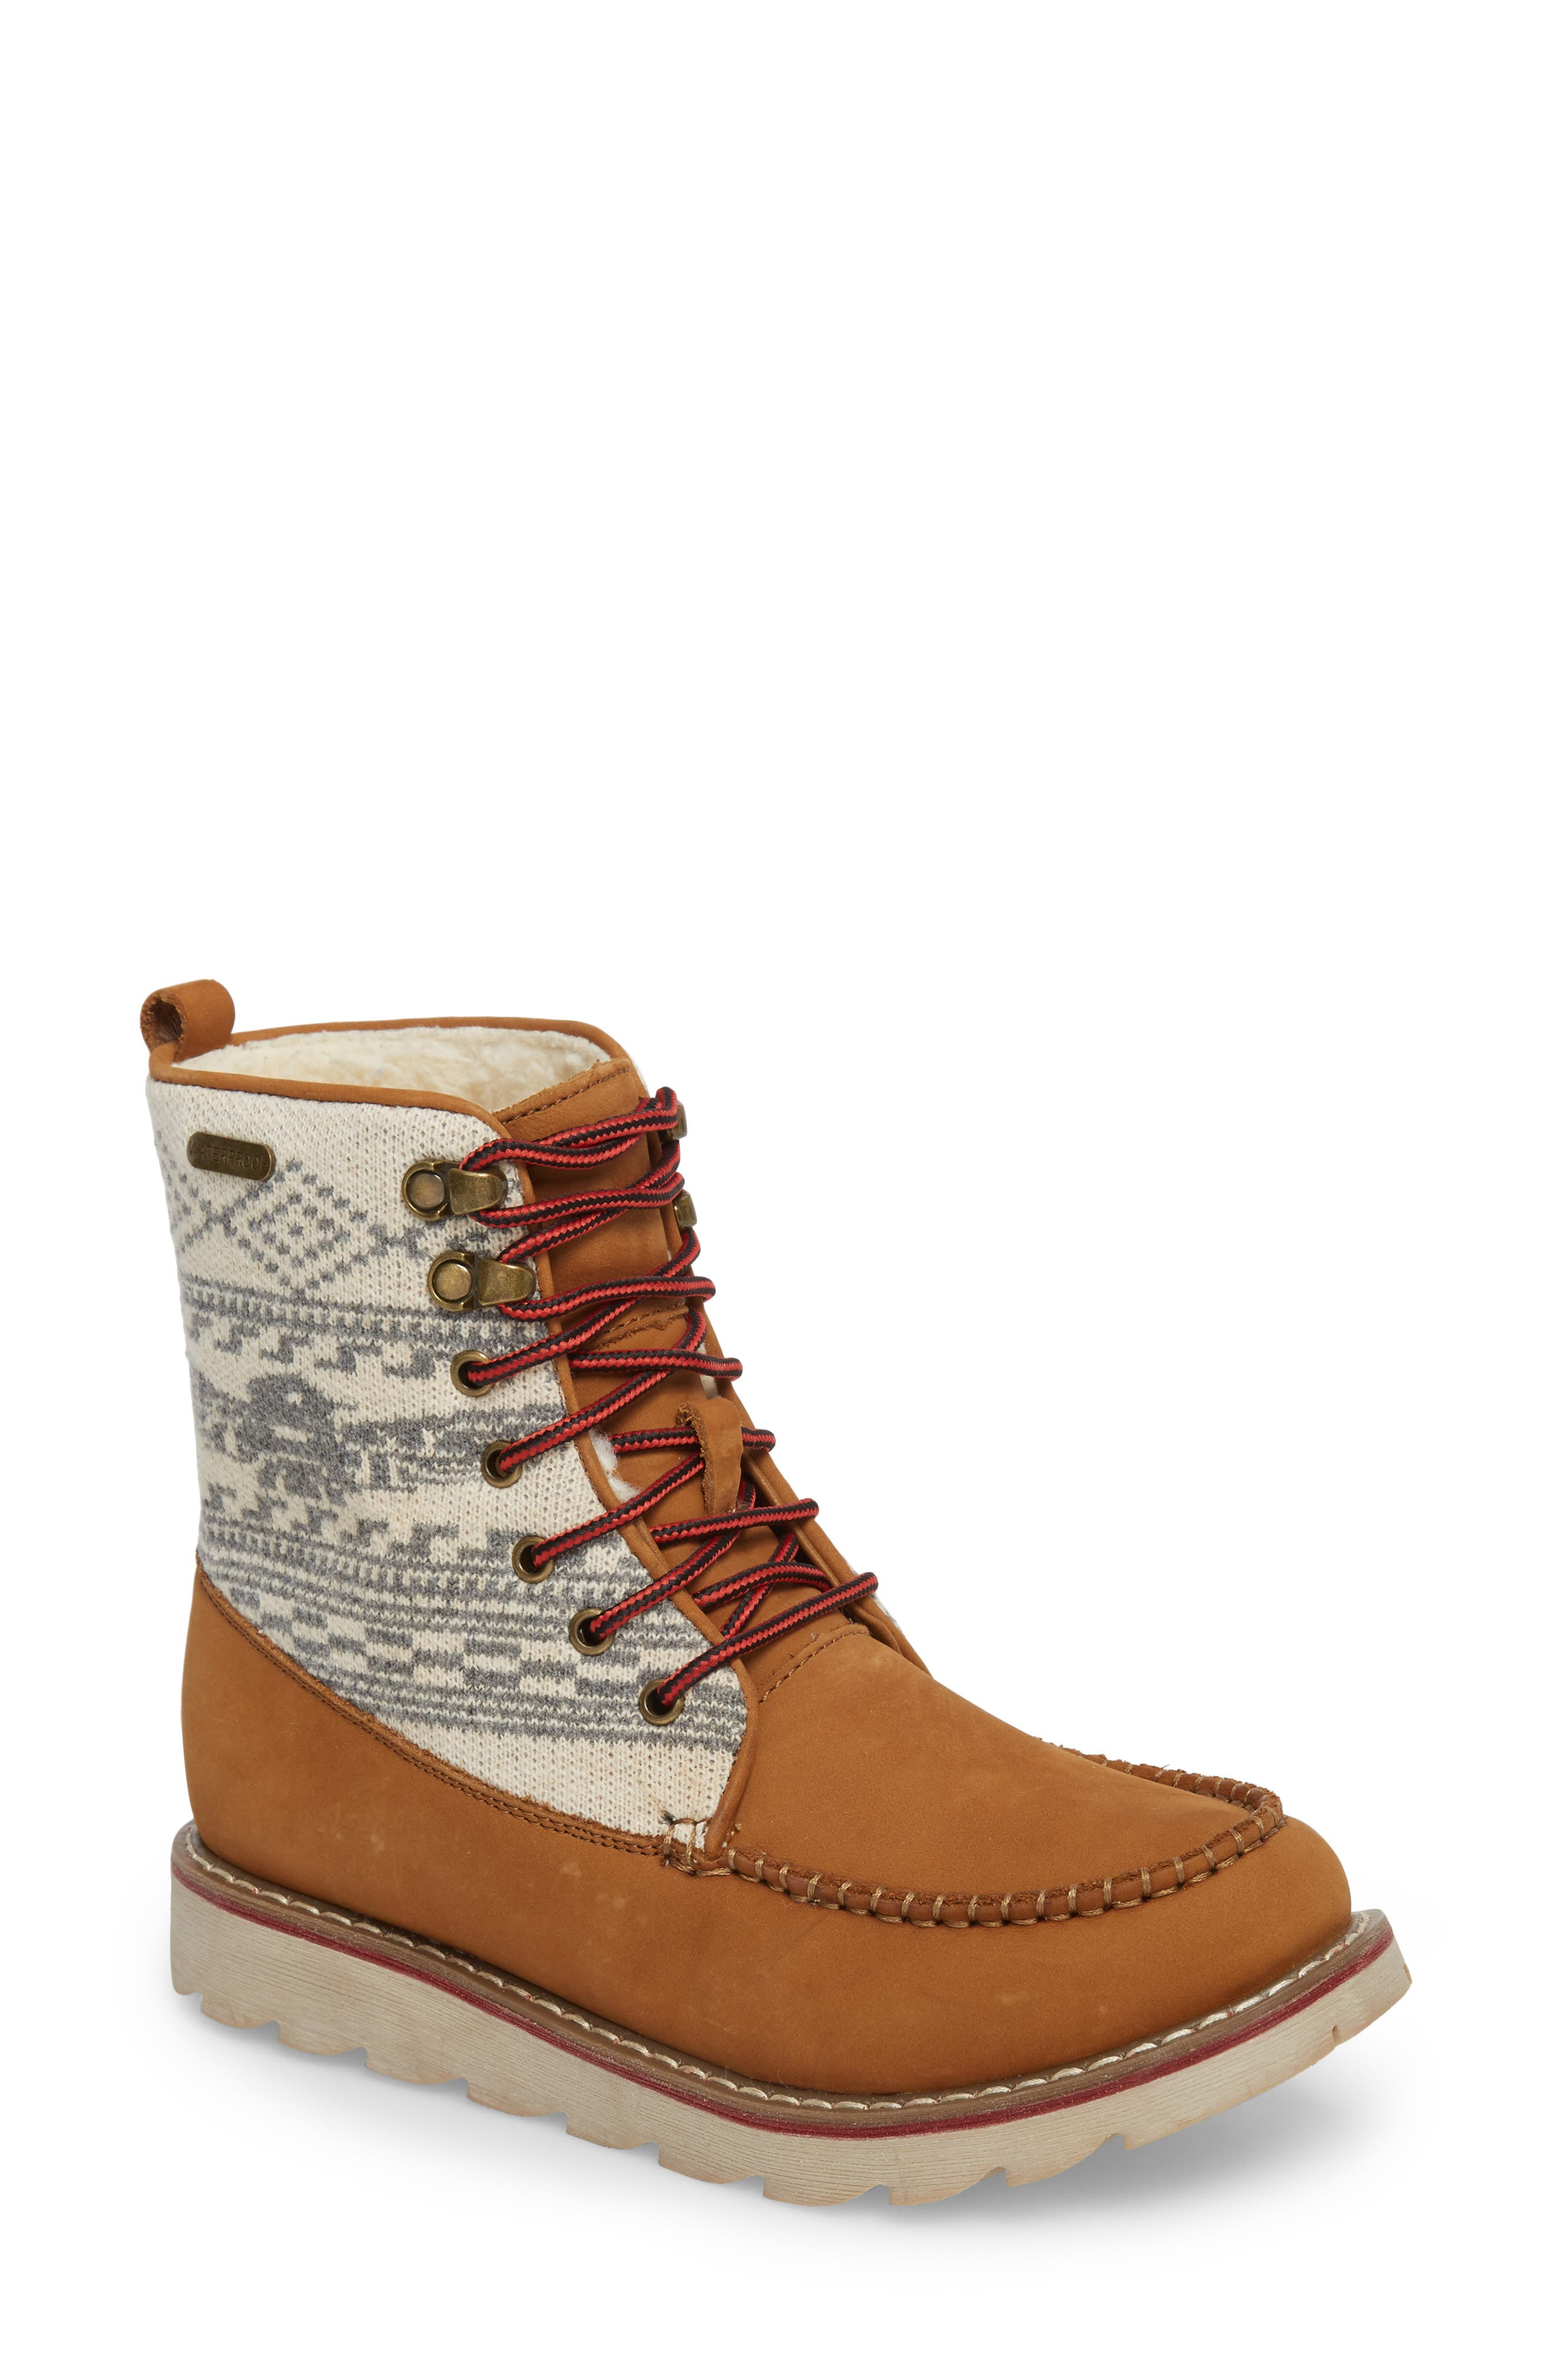 Patterned Waterproof Snow Boot,                         Main,                         color, 260